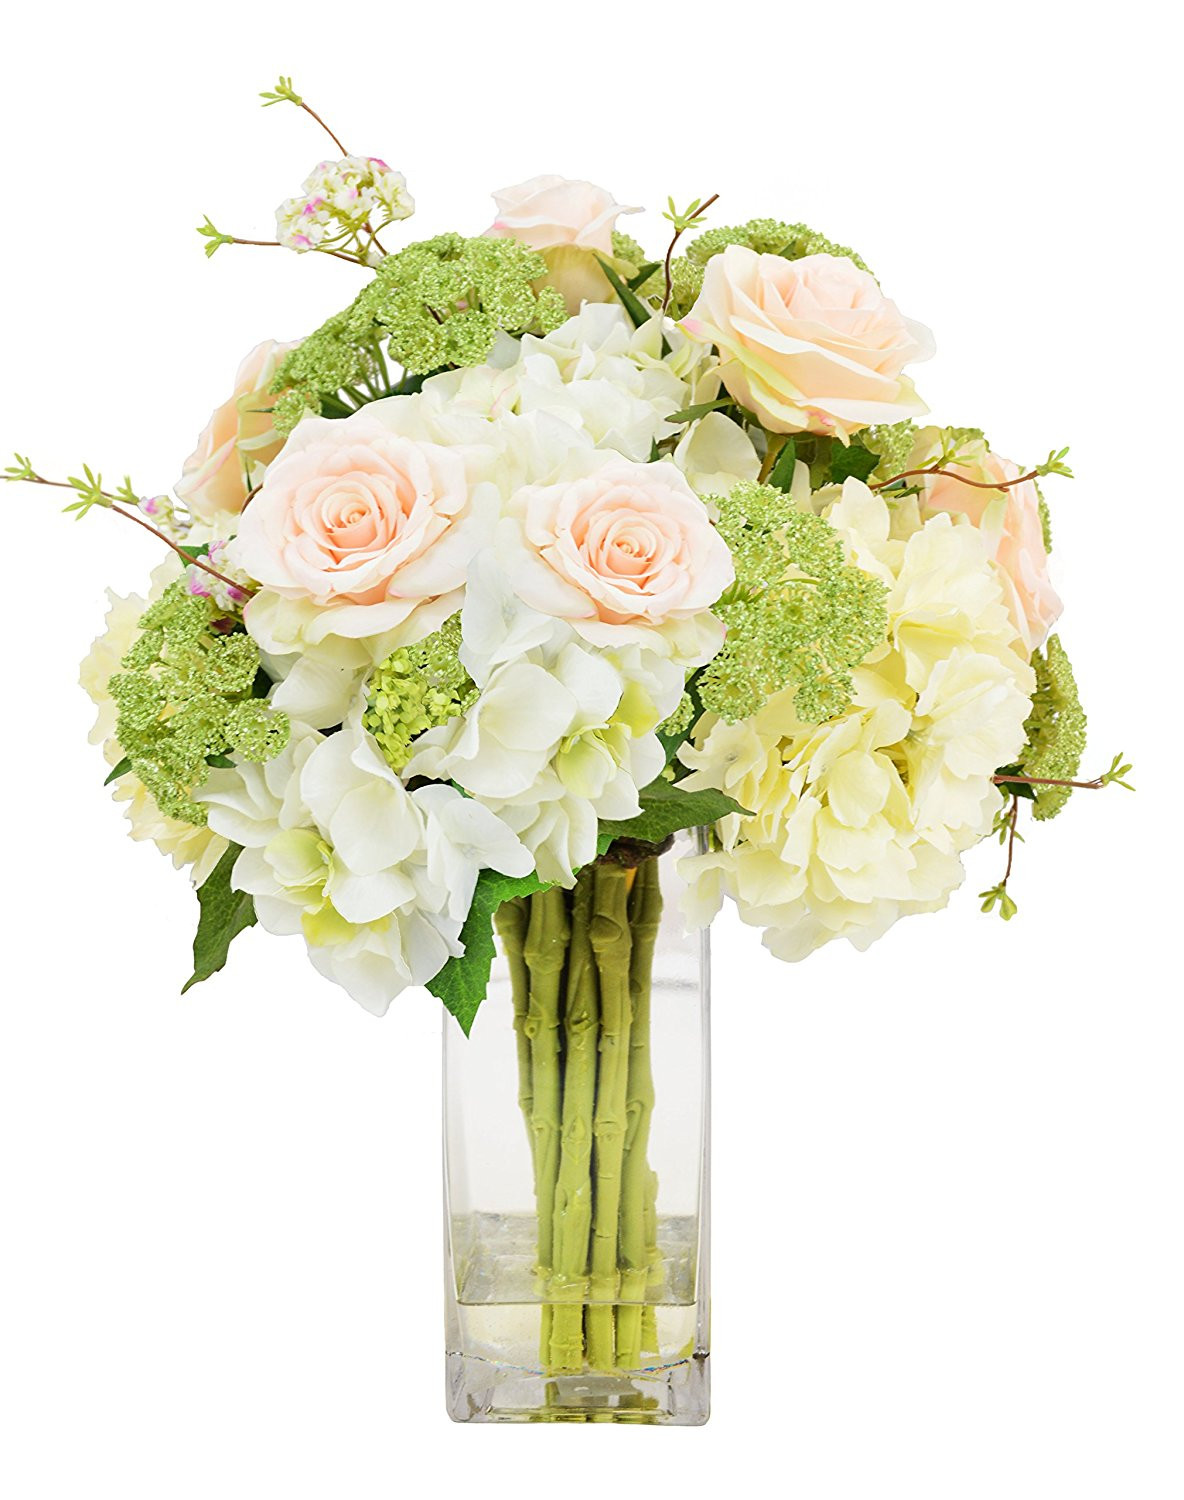 large flower vases wholesale of cheap tall square water glass cups find tall square water glass for get quotations a· creative displays cream hydrangeas green queen anns lace soft peach roses green budding